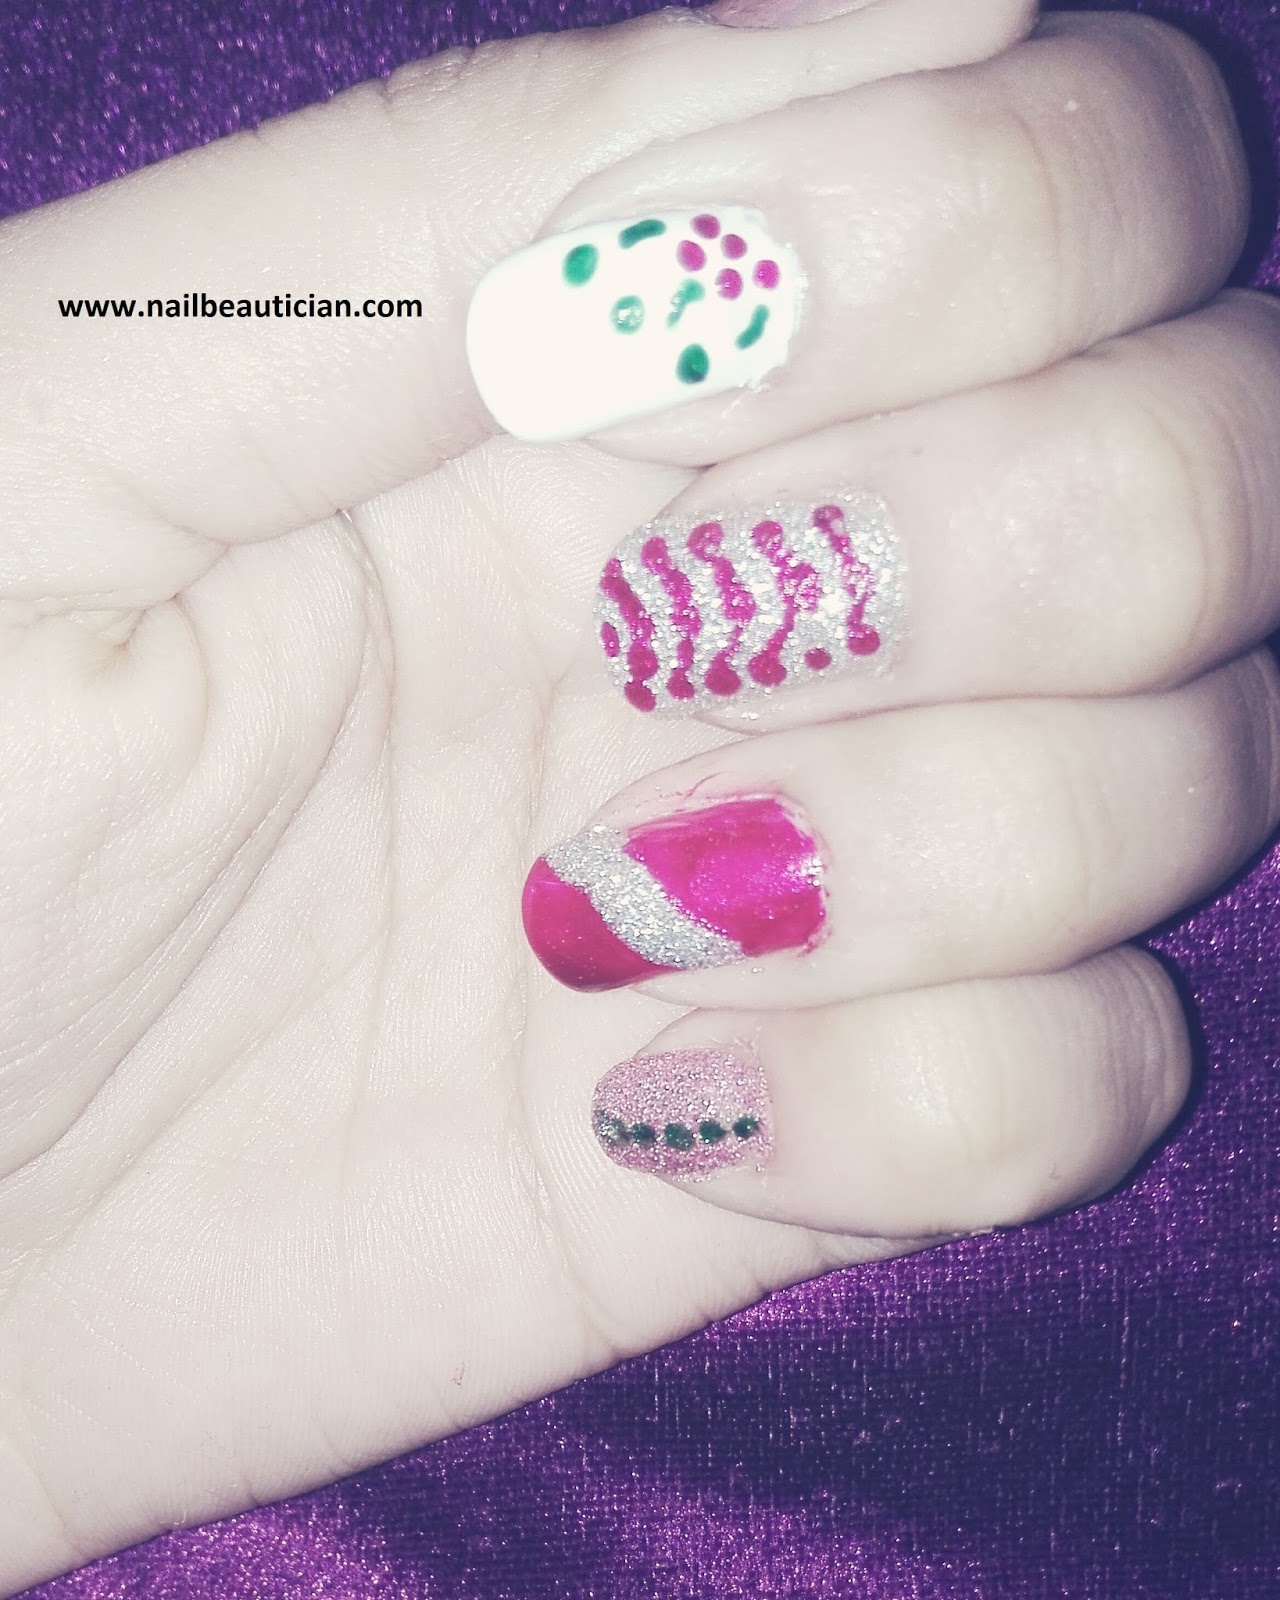 Nail Beautician: 5 Hot Nail Art Designs Without Using Any Tool